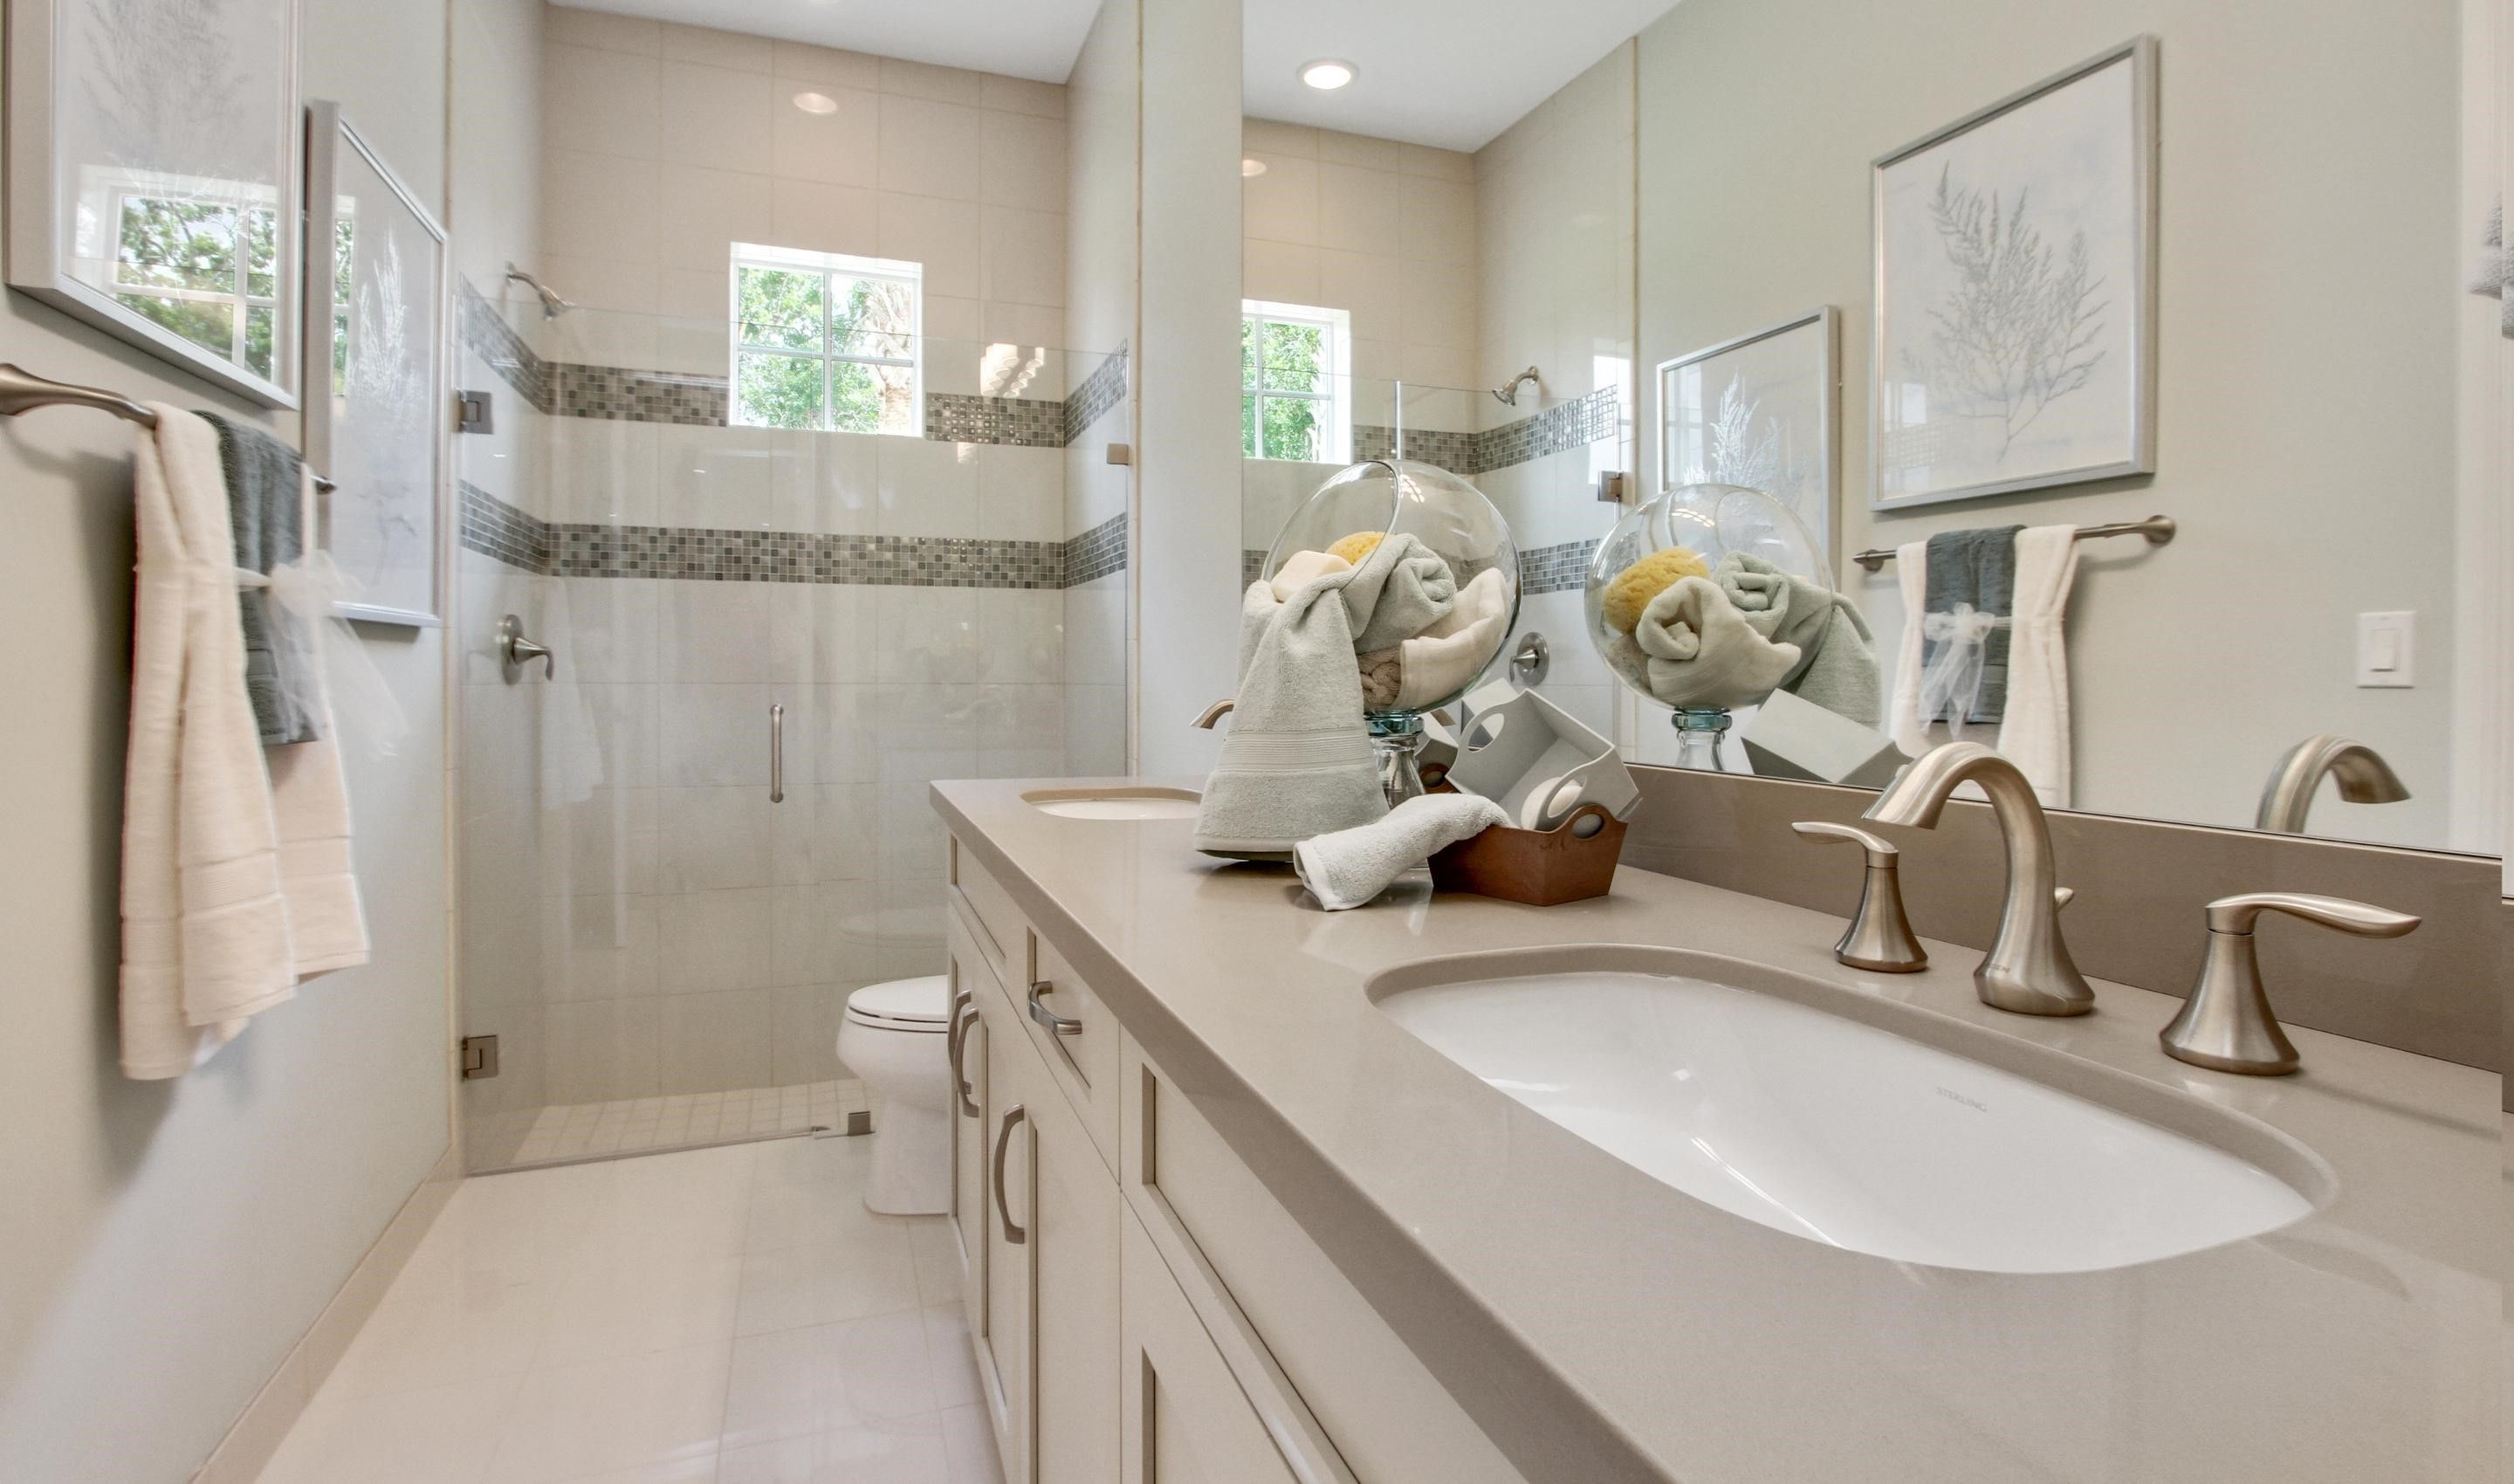 Bathroom featured in the Hawthorne By K. Hovnanian® Homes in Palm Beach County, FL